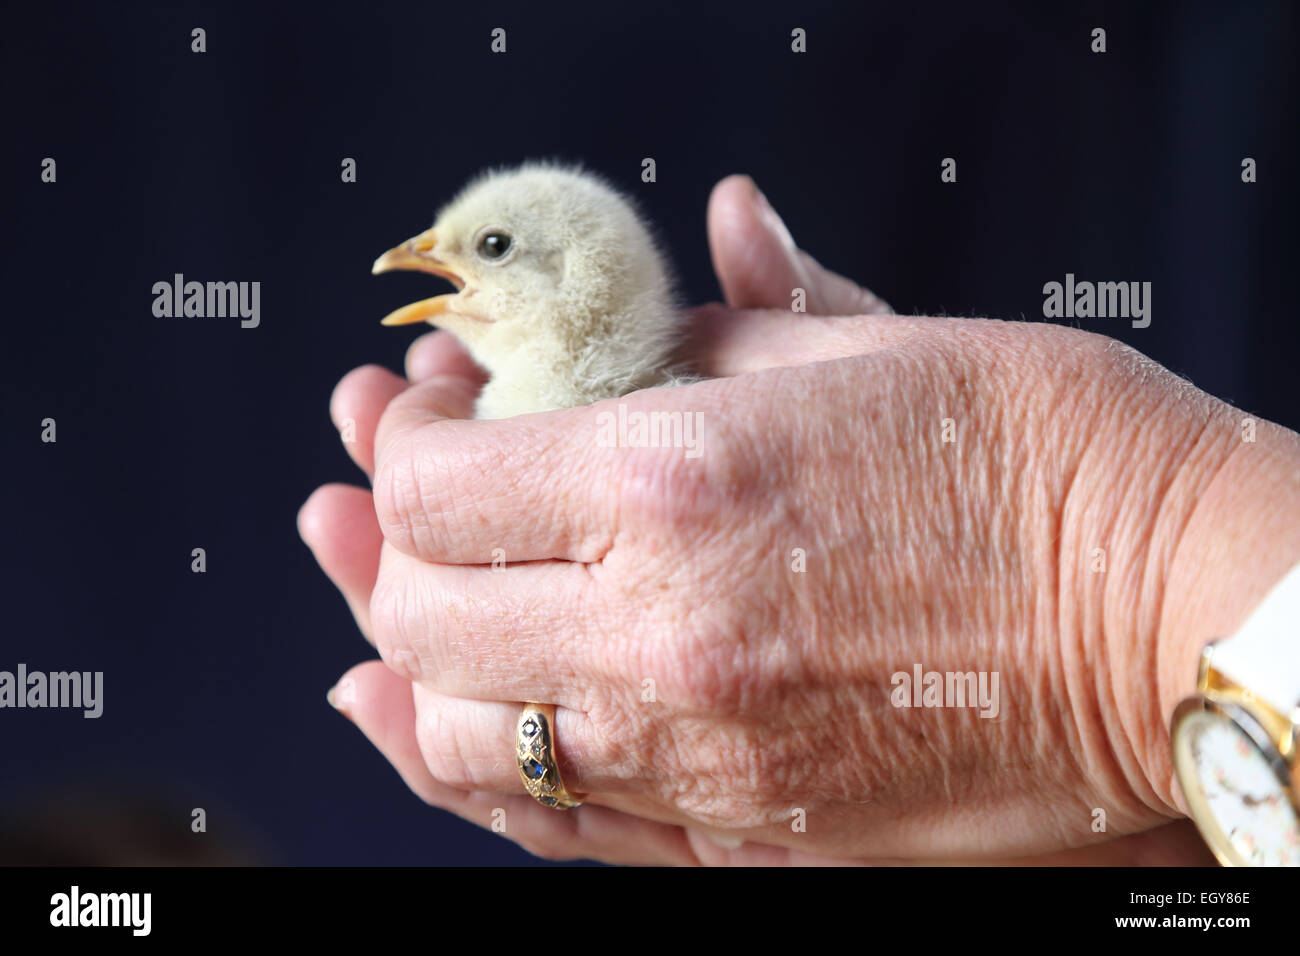 Chick being held - model released - Stock Image